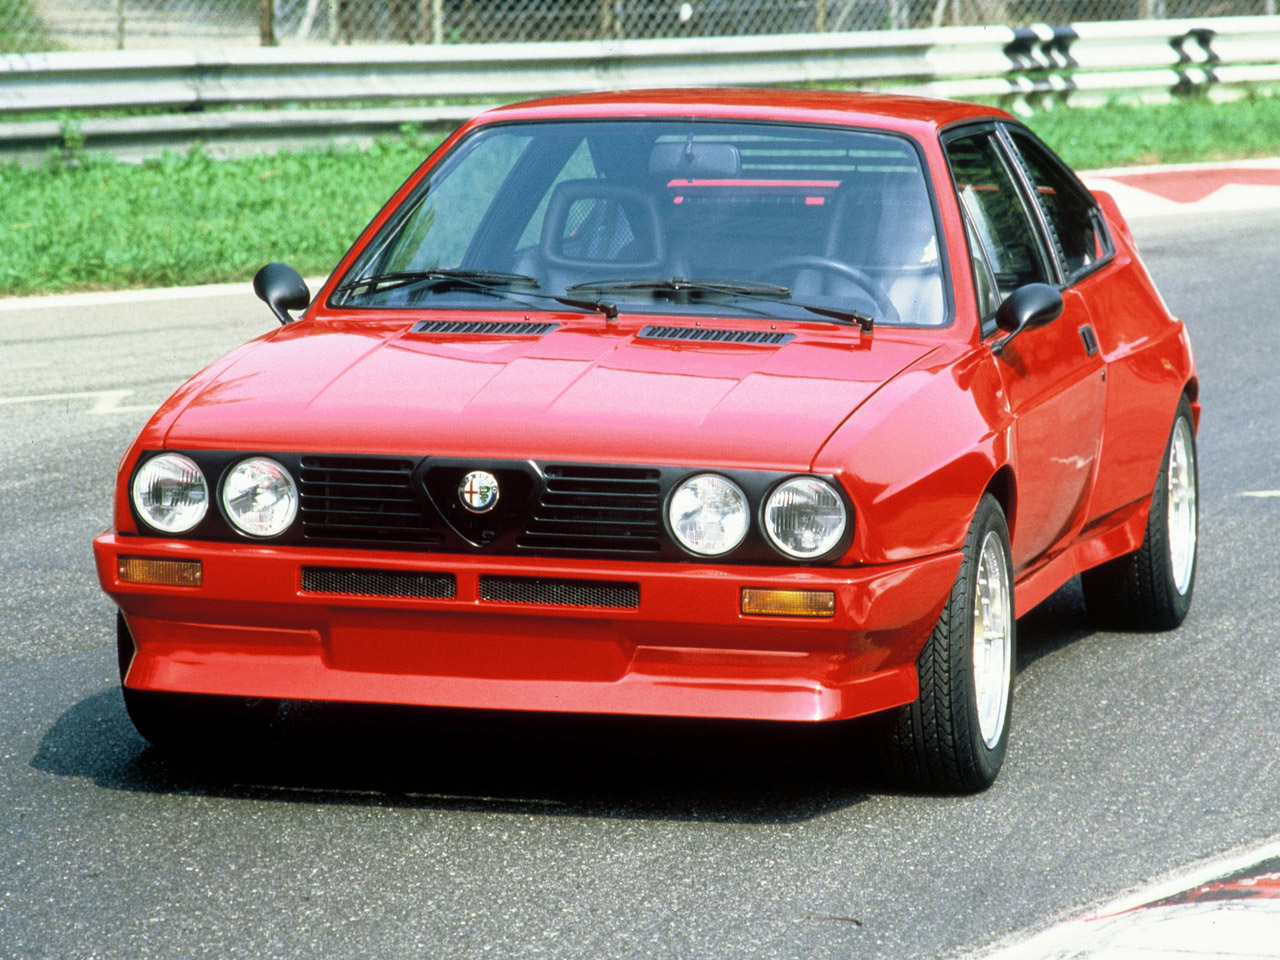 Mad 4 Wheels - 1982 Alfa Romeo Alfasud Sprint 6C prototype - Best ...